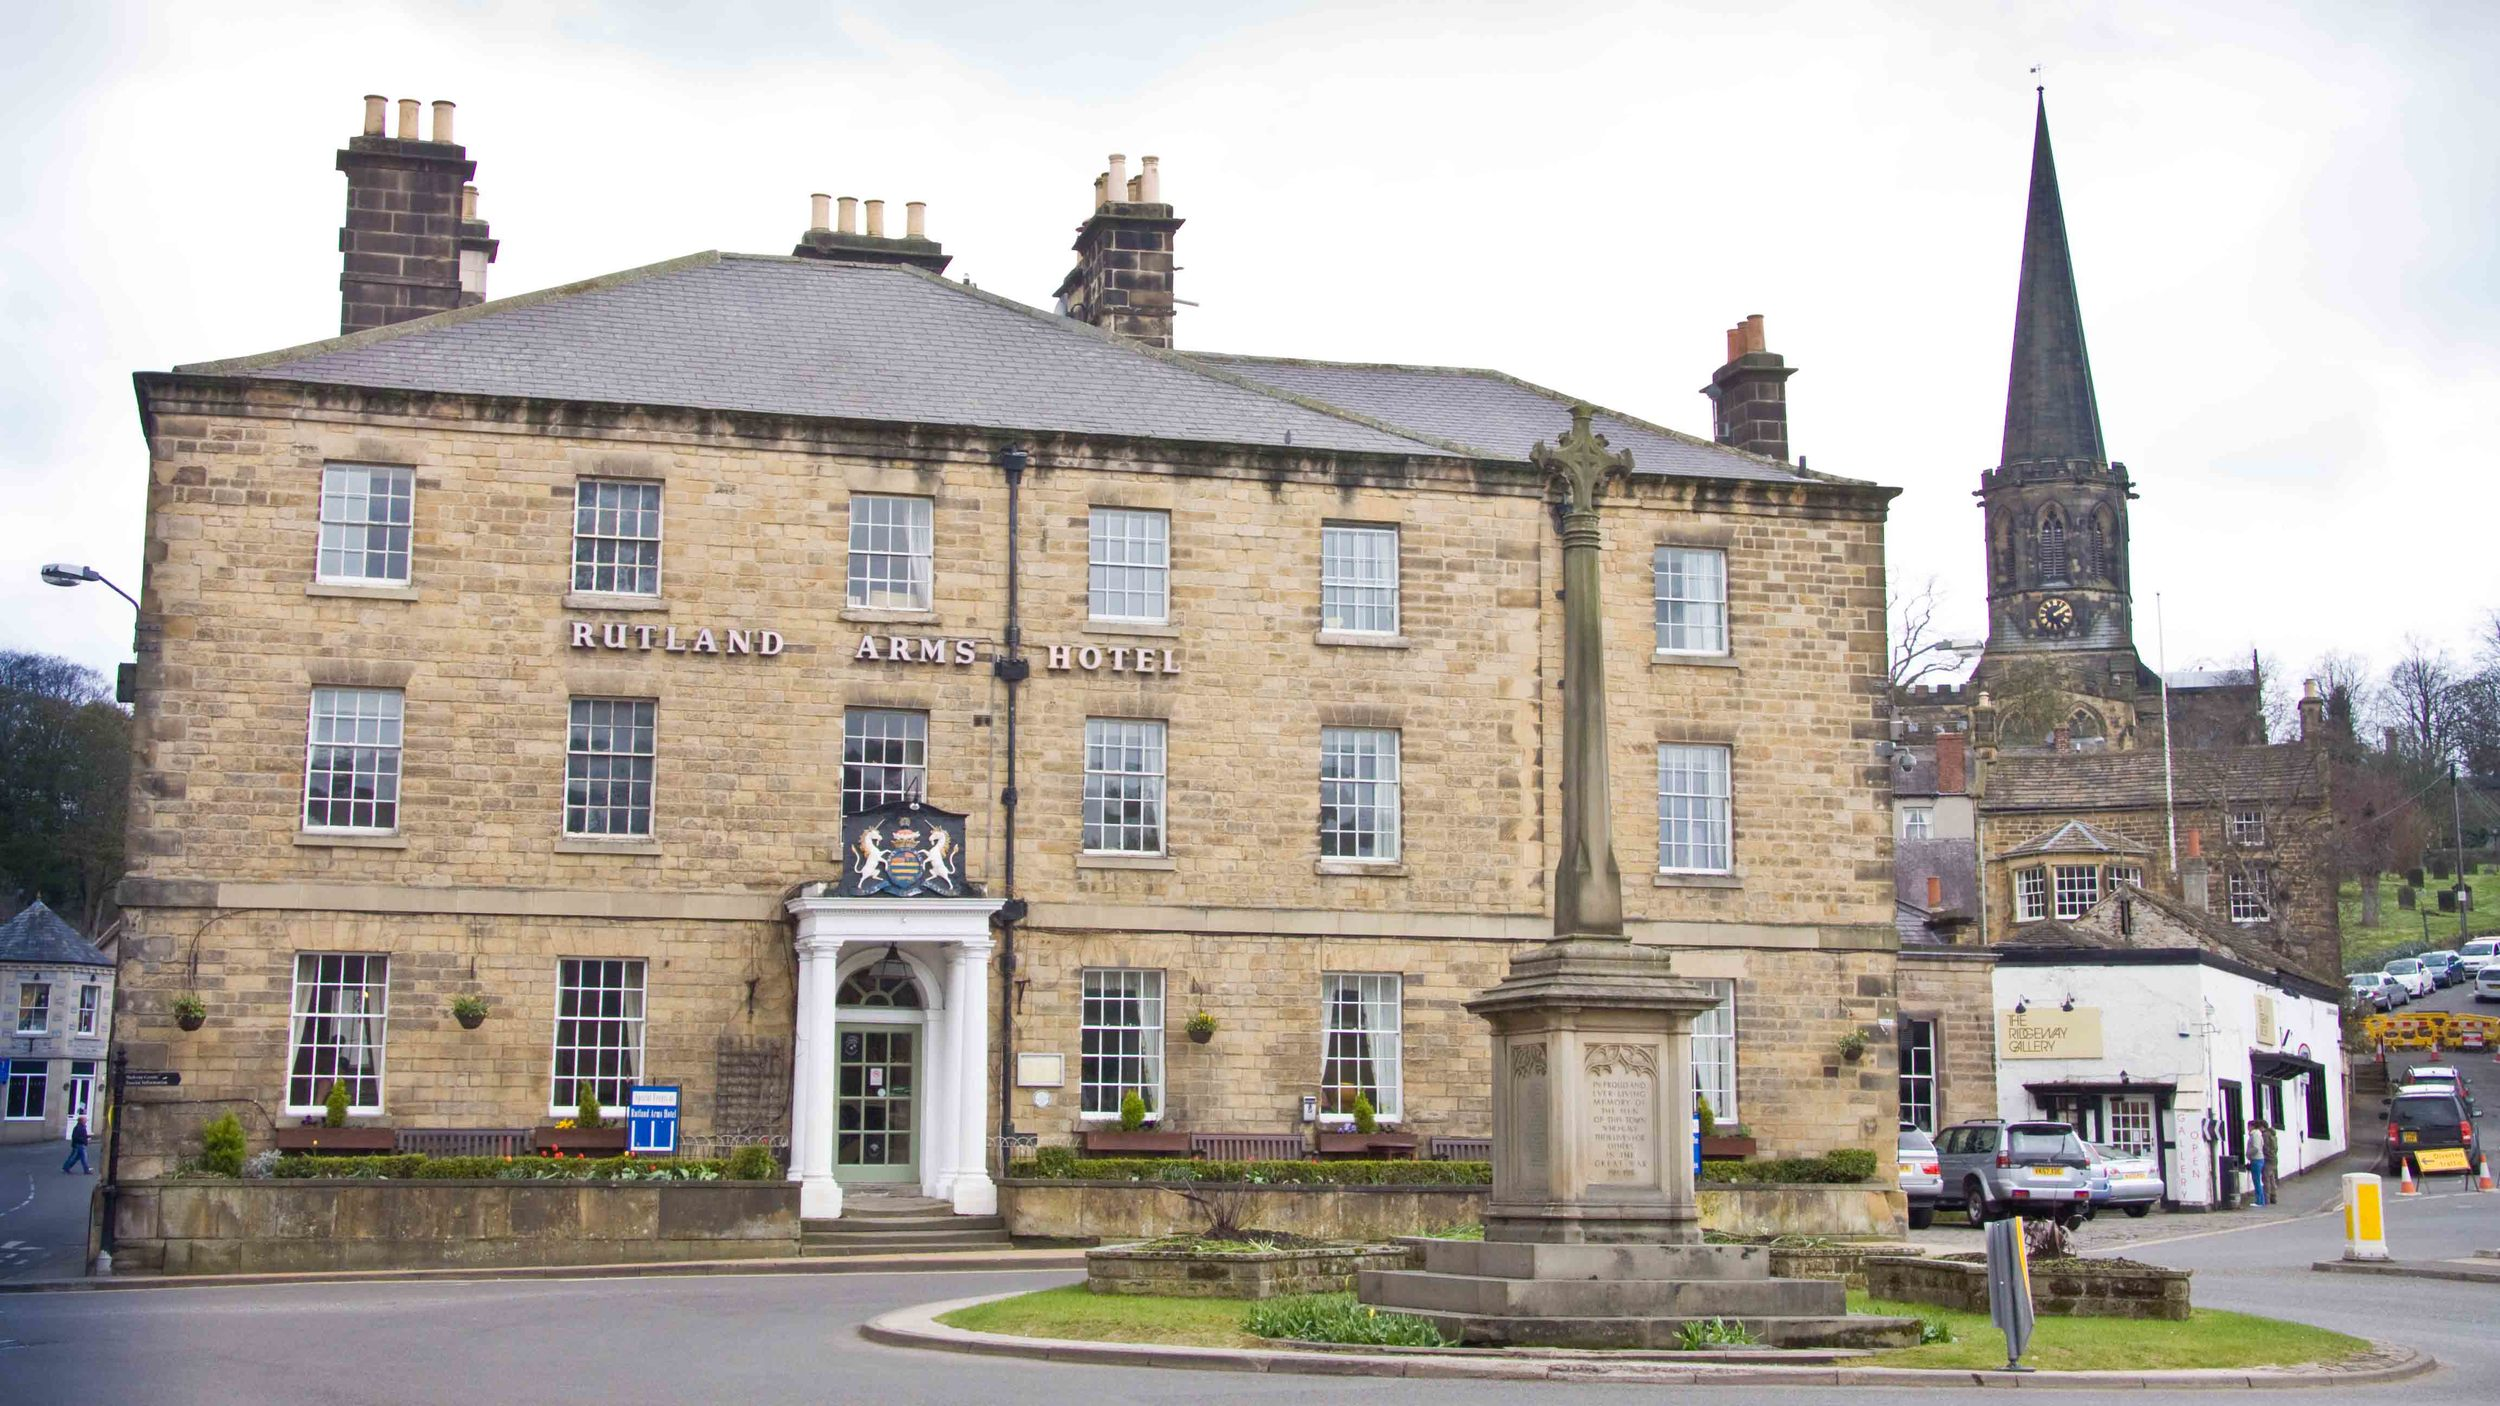 The Rutland Arms Hotel, Bakewell